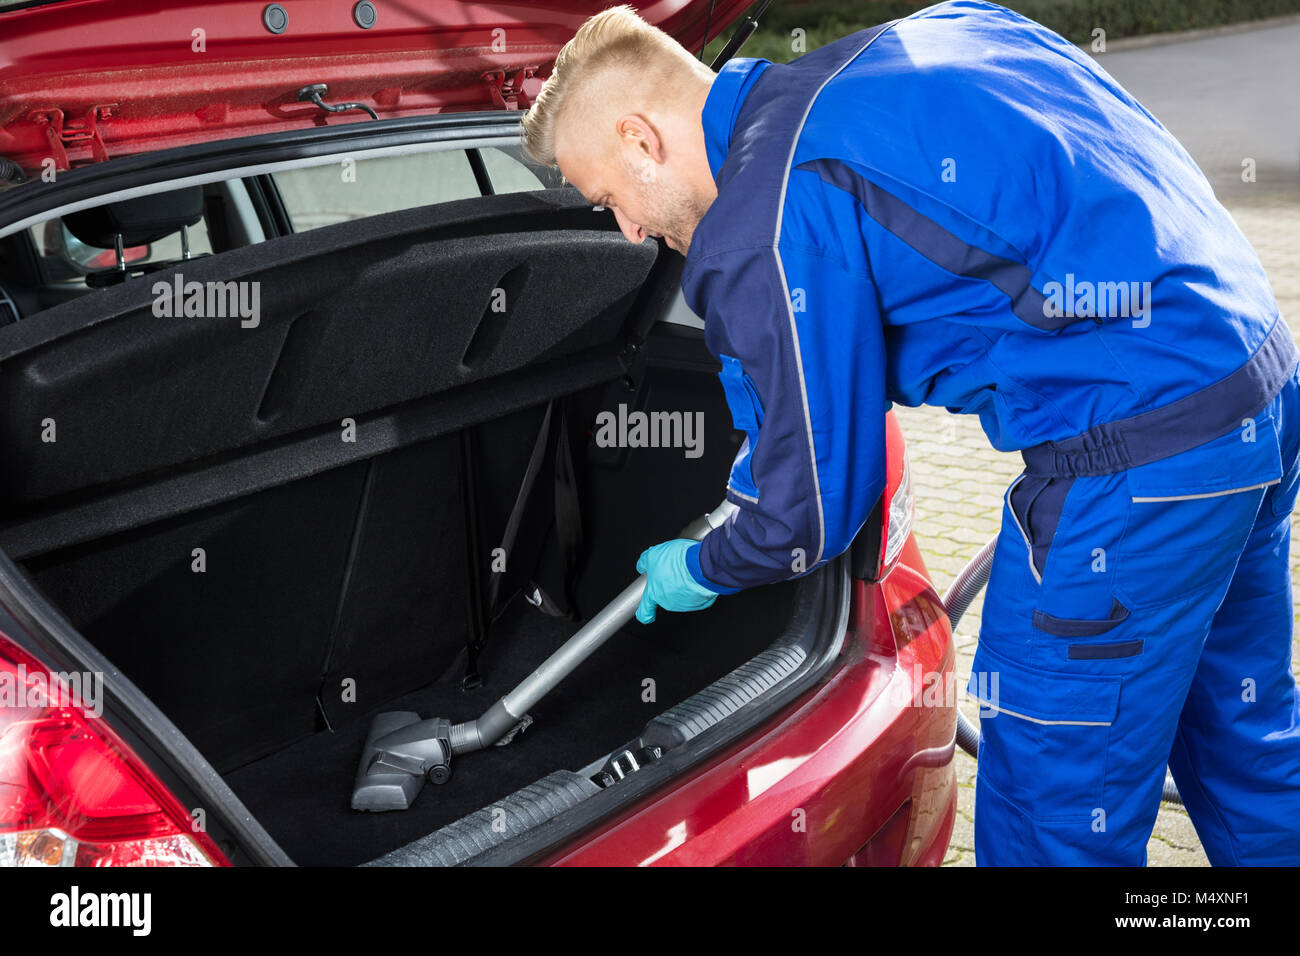 Happy Young Man Vacuuming Car Trunk With Vacuum Cleaner - Stock Image